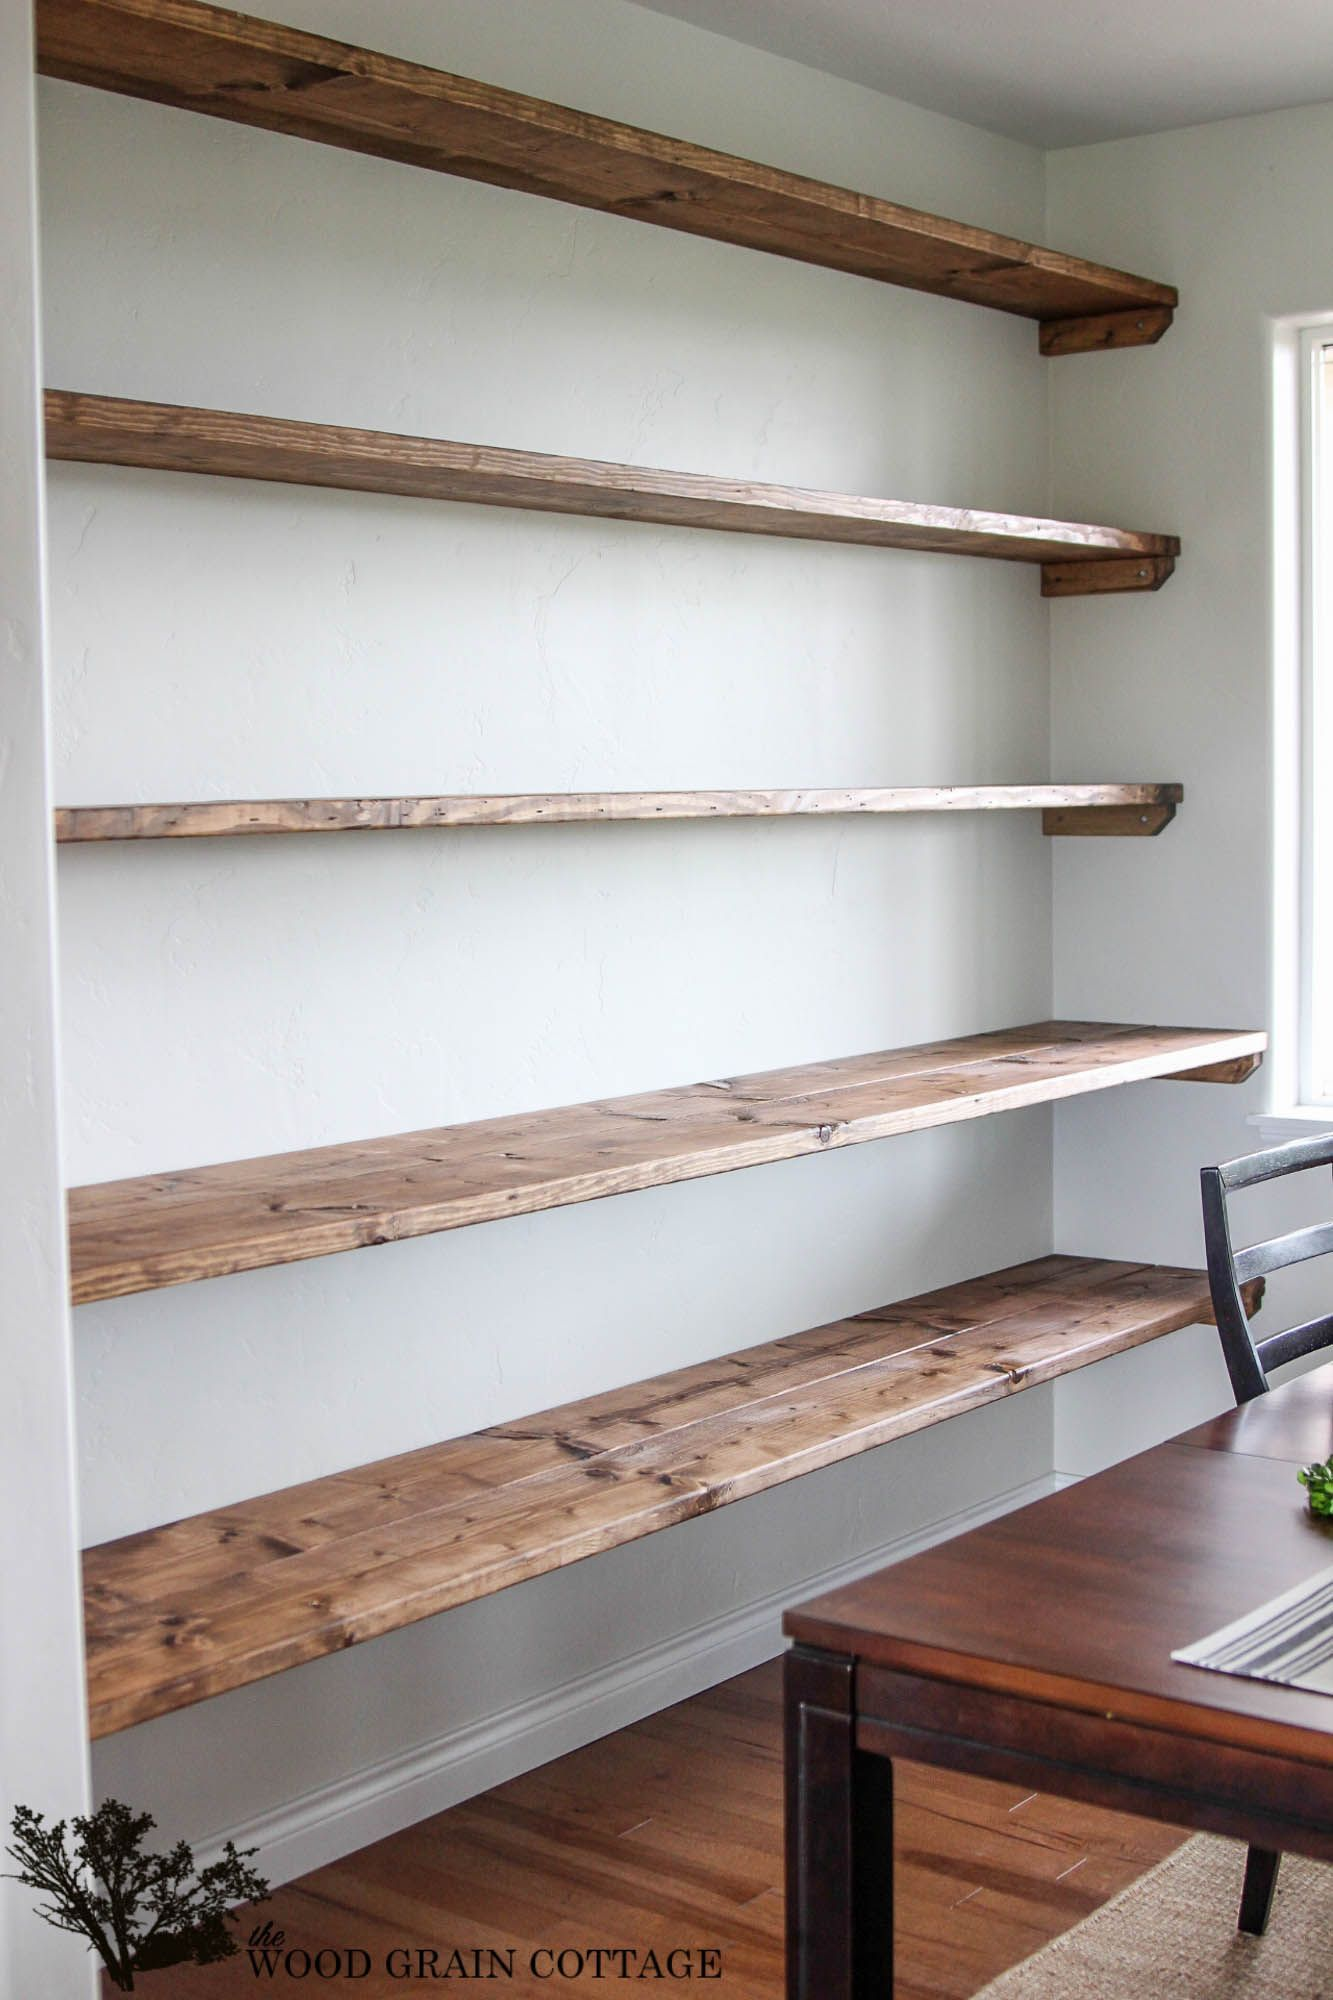 https://www.homedit.com/rustic-shelves/